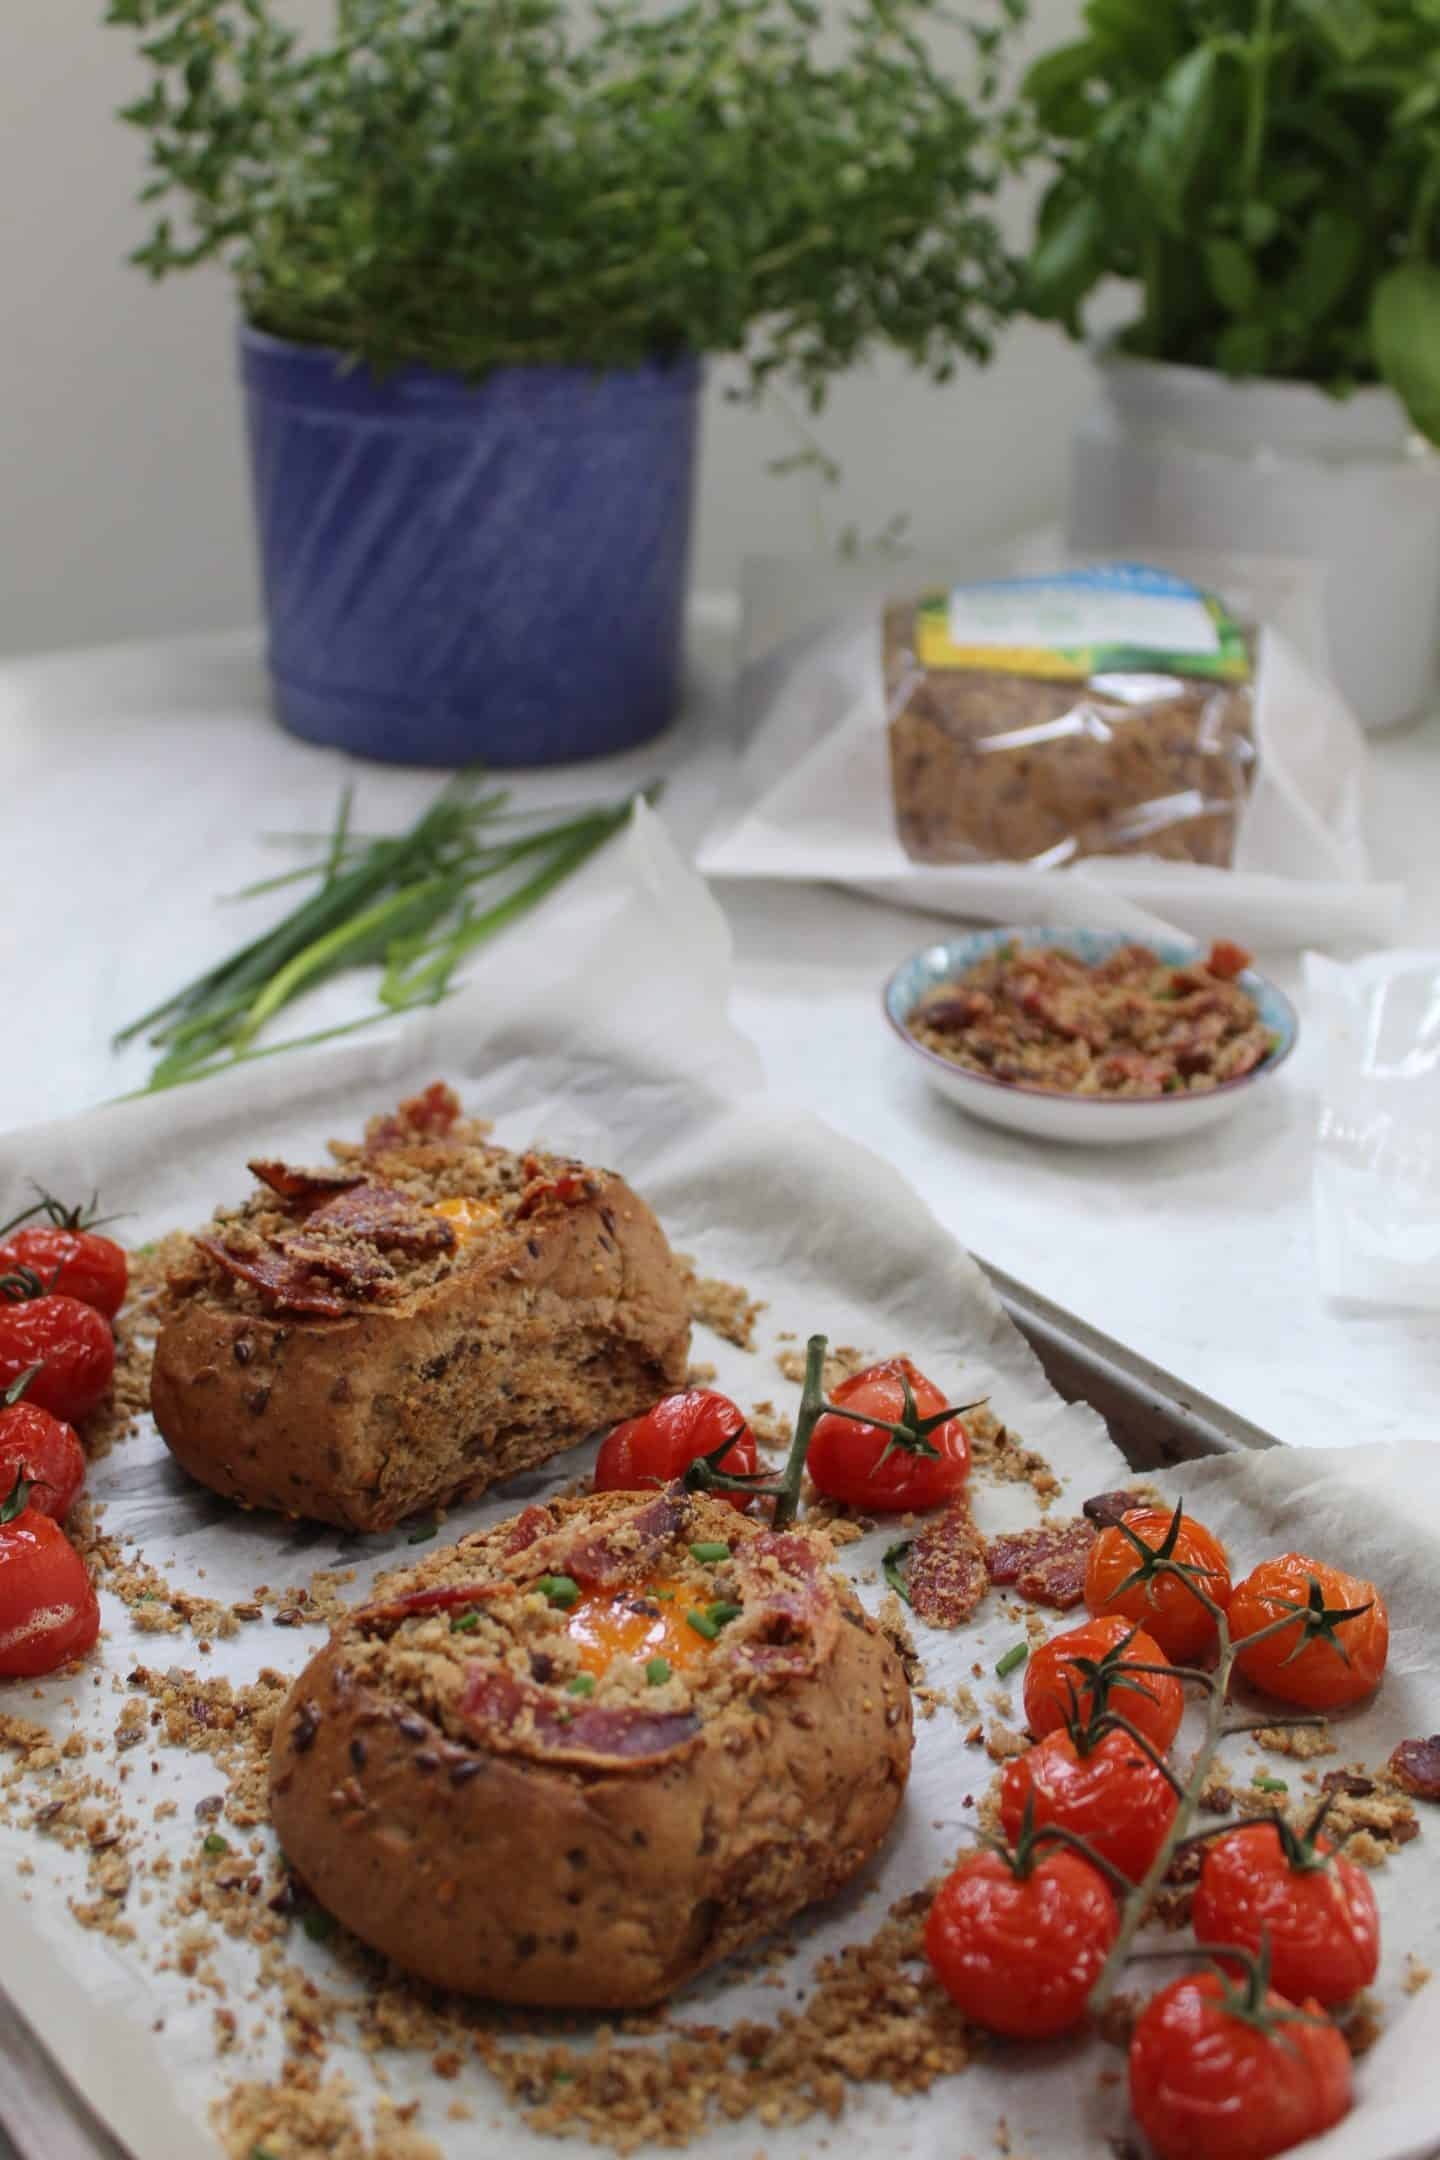 gluten free bread baskets with egg